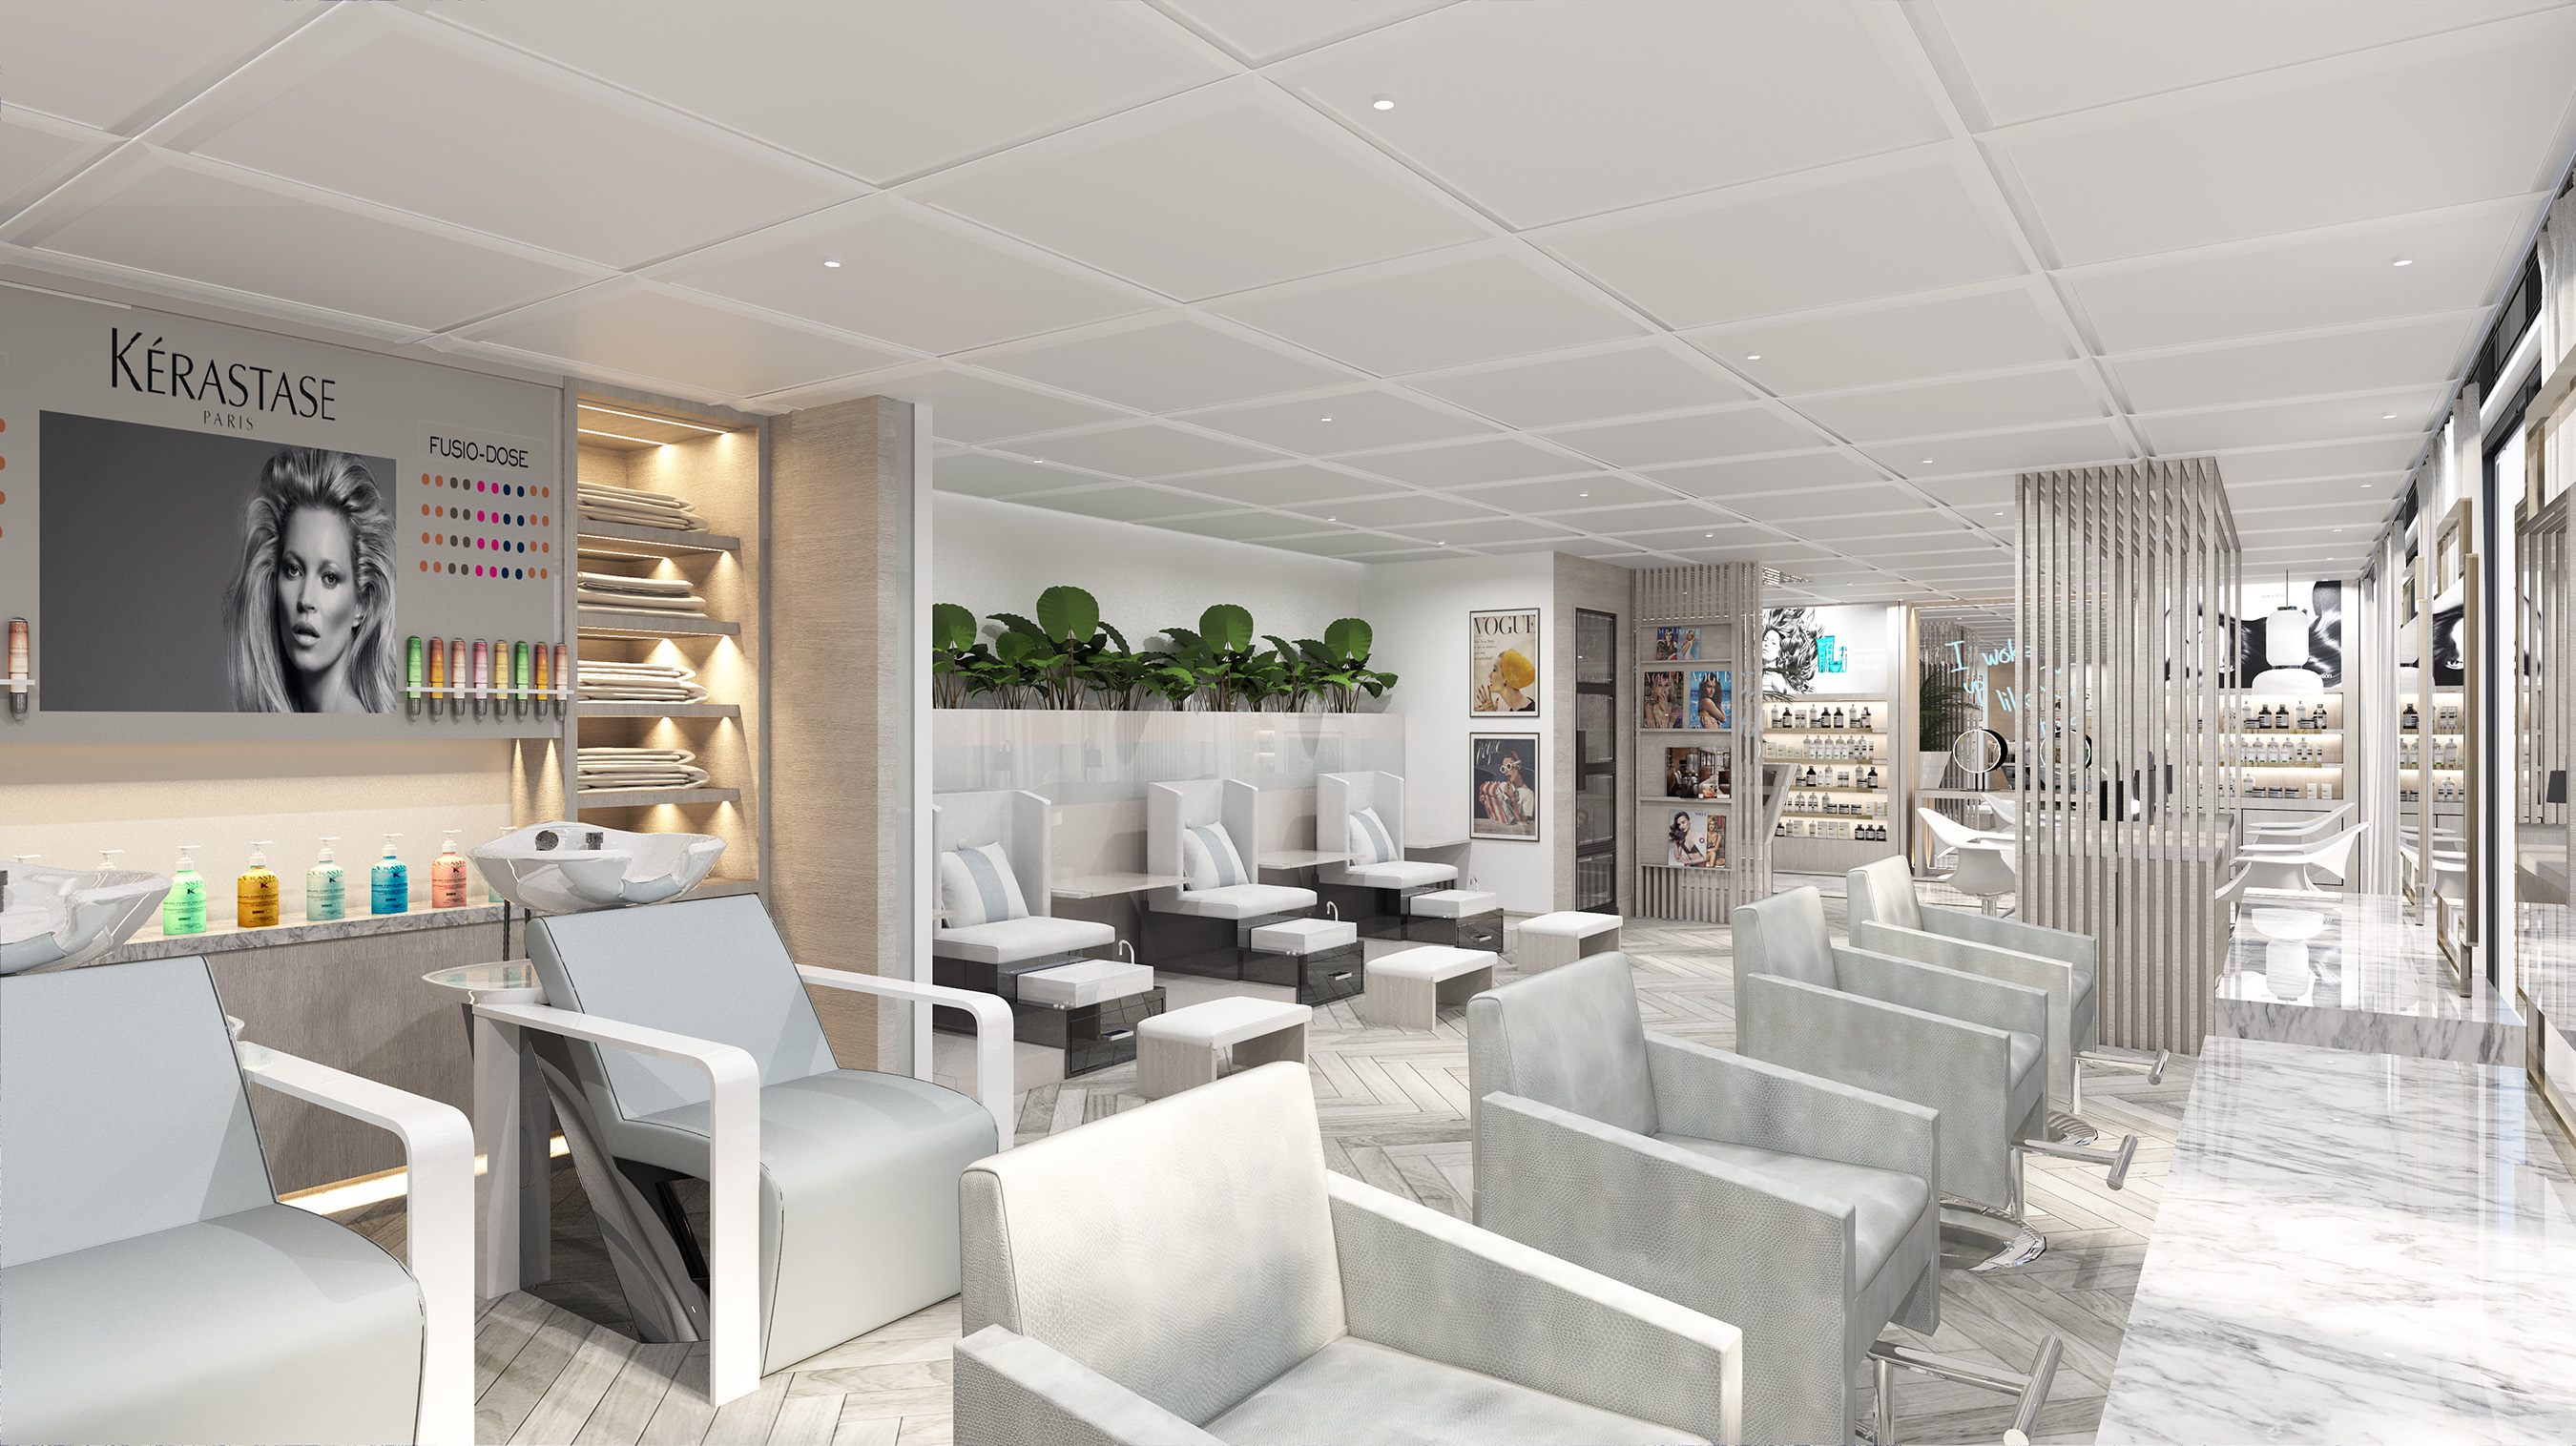 Celebrity Cruises will be partnering with Kérastase®, one of the world's most advanced luxury haircare brands, to create the ultimate salon experience at The Spa.